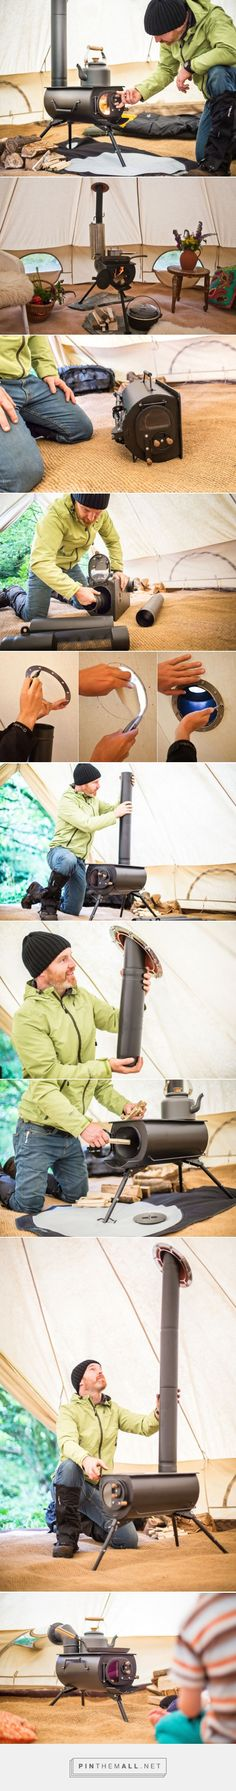 Portable Woodburning Stove Can Be Installed in Tents Teepees or Small Cabins. Portable Woodburning Stove Can Be Installed in Tents Teepees or Small Cabins. Zelt Camping, Camping Diy, Camping Survival, Outdoor Survival, Camping Gear, Camping Hacks, Outdoor Camping, Backpacking, Camping Essentials